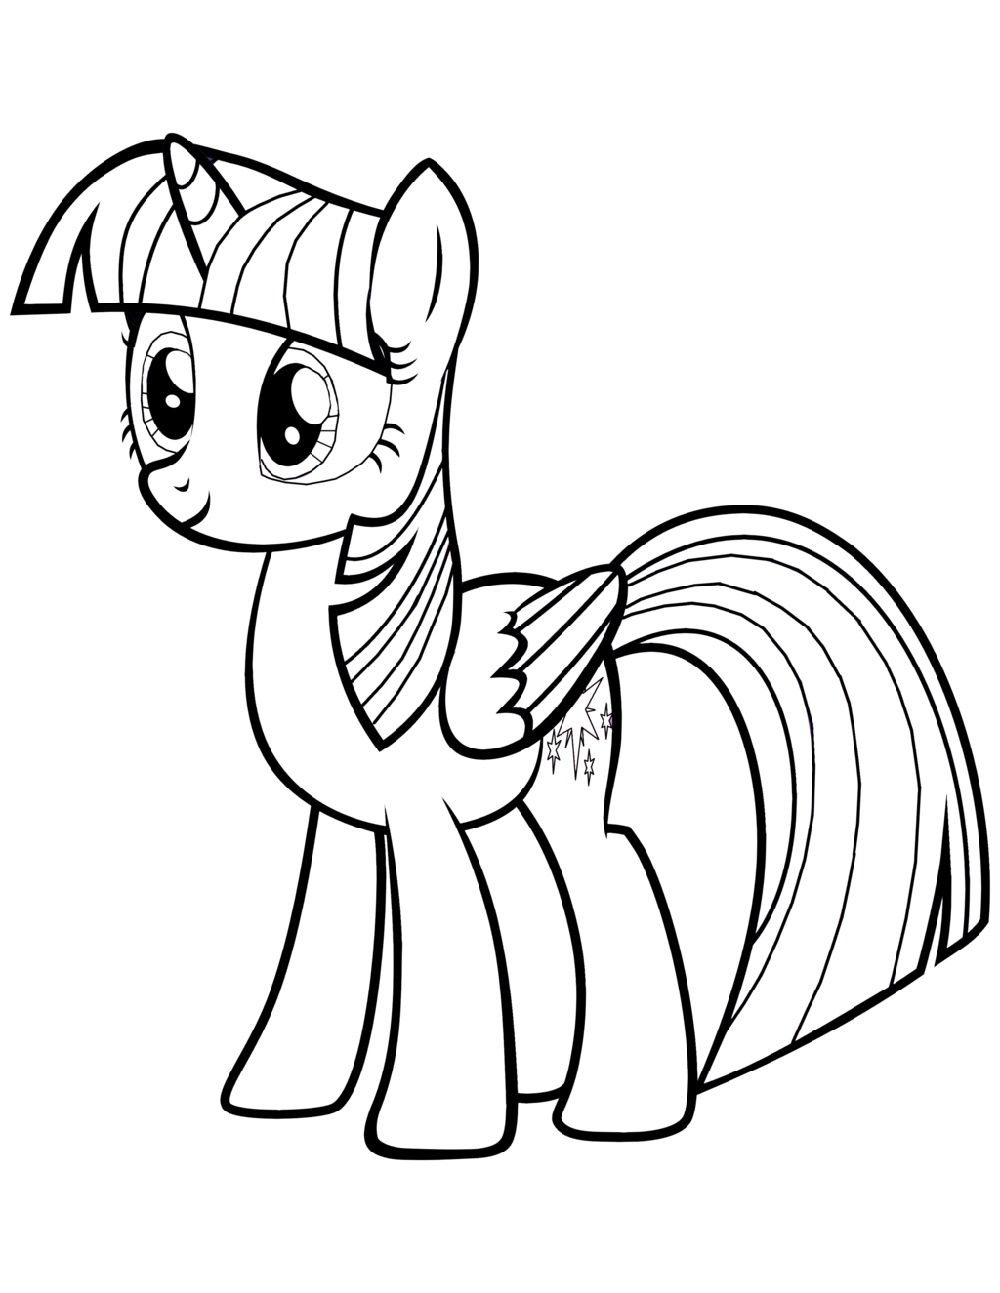 Free Alicorn Coloring Pages Printable K5 Worksheets Cartoon Coloring Pages My Little Pony Coloring My Little Pony Drawing